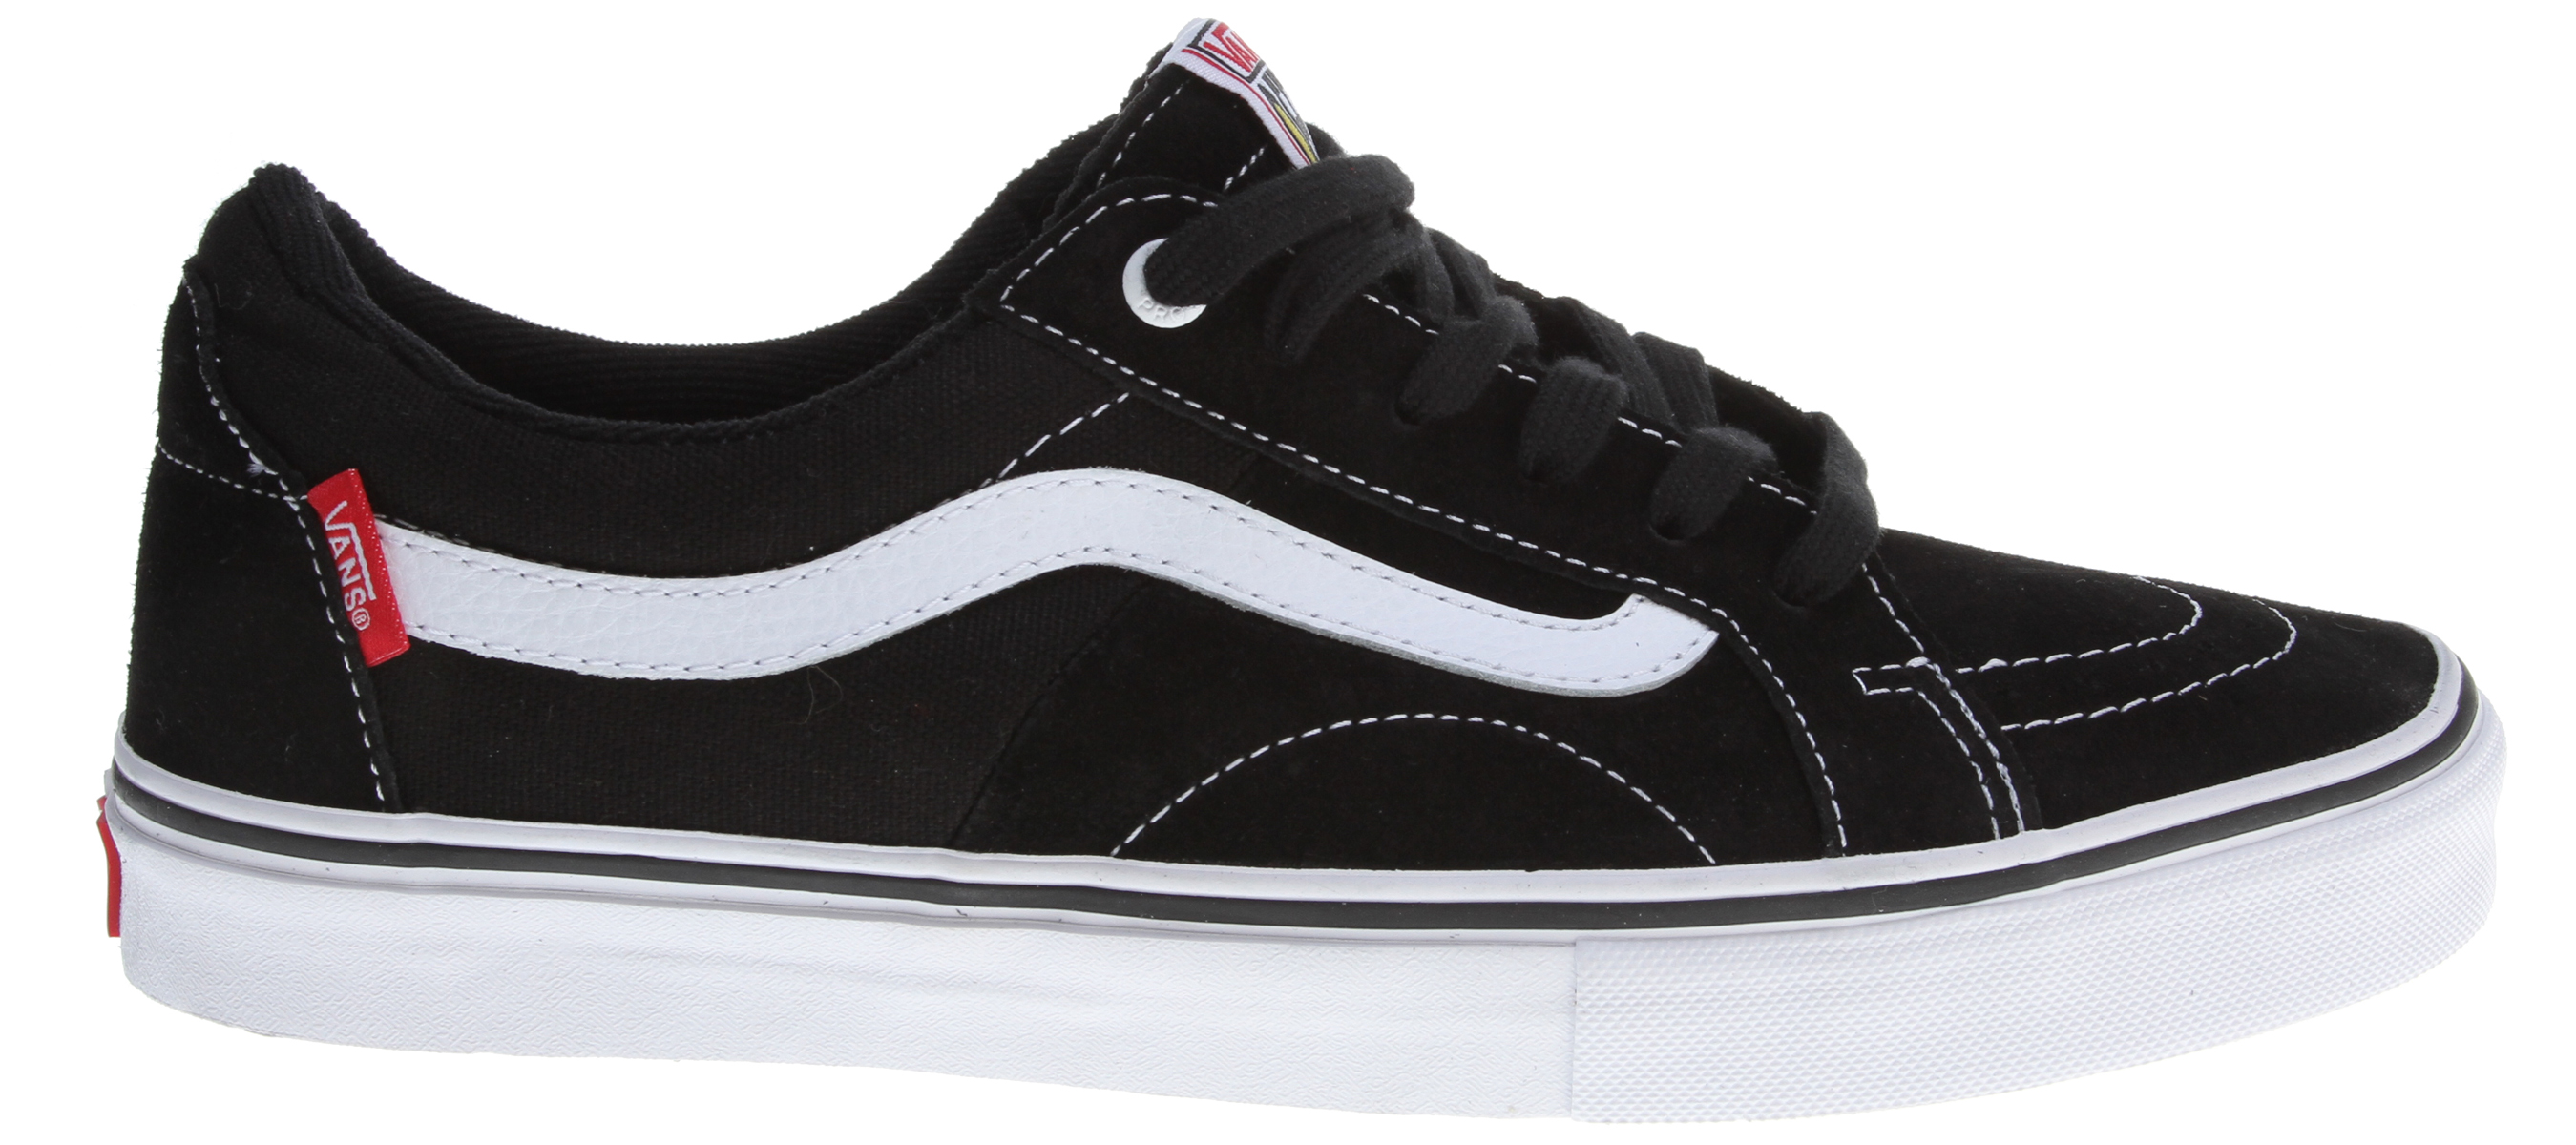 Skateboard Key Features of the Vans Av Native American Low Skate Shoes: Pro vulc construction ortholite cushioning flex & fit upper vans original waffle outsole - $38.95